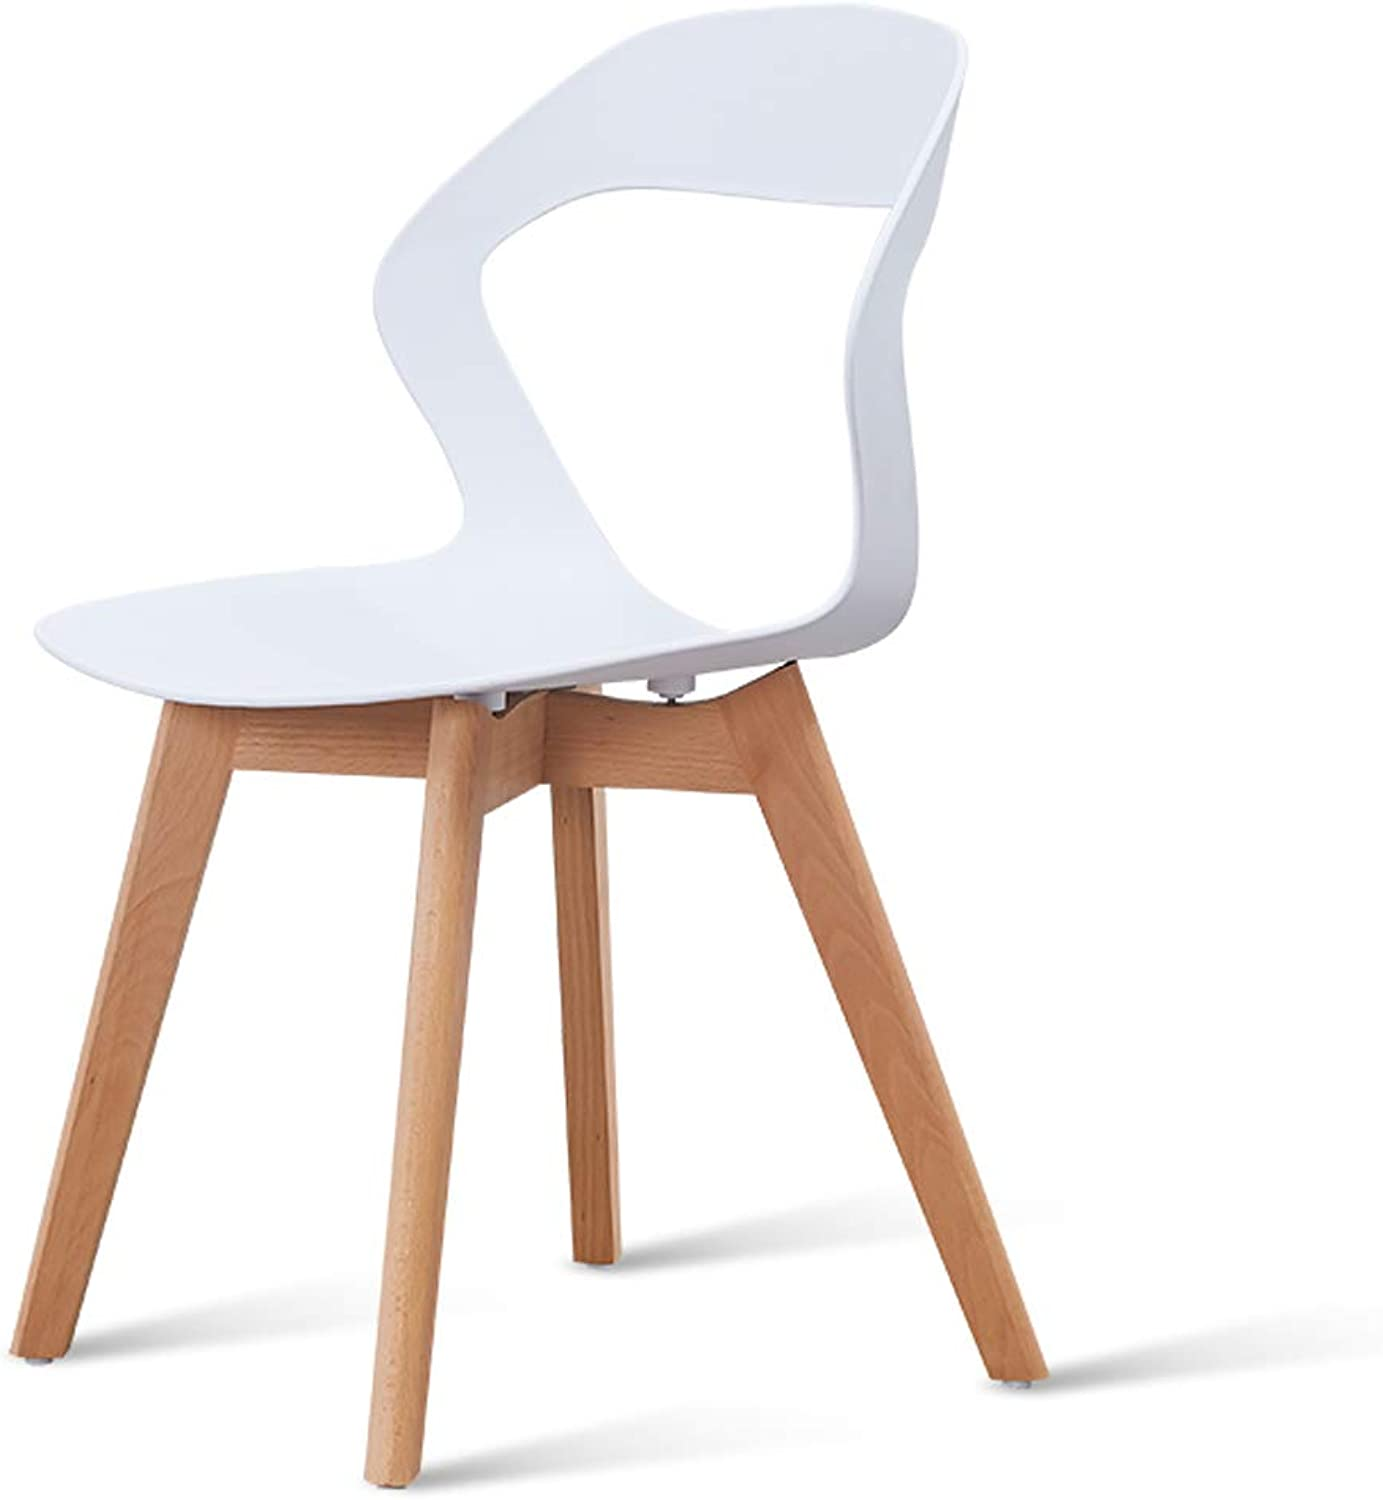 LRW Nordic Dining Chair, Home Computer Chair, Modern Backrest Chair, Bedroom Chair, White